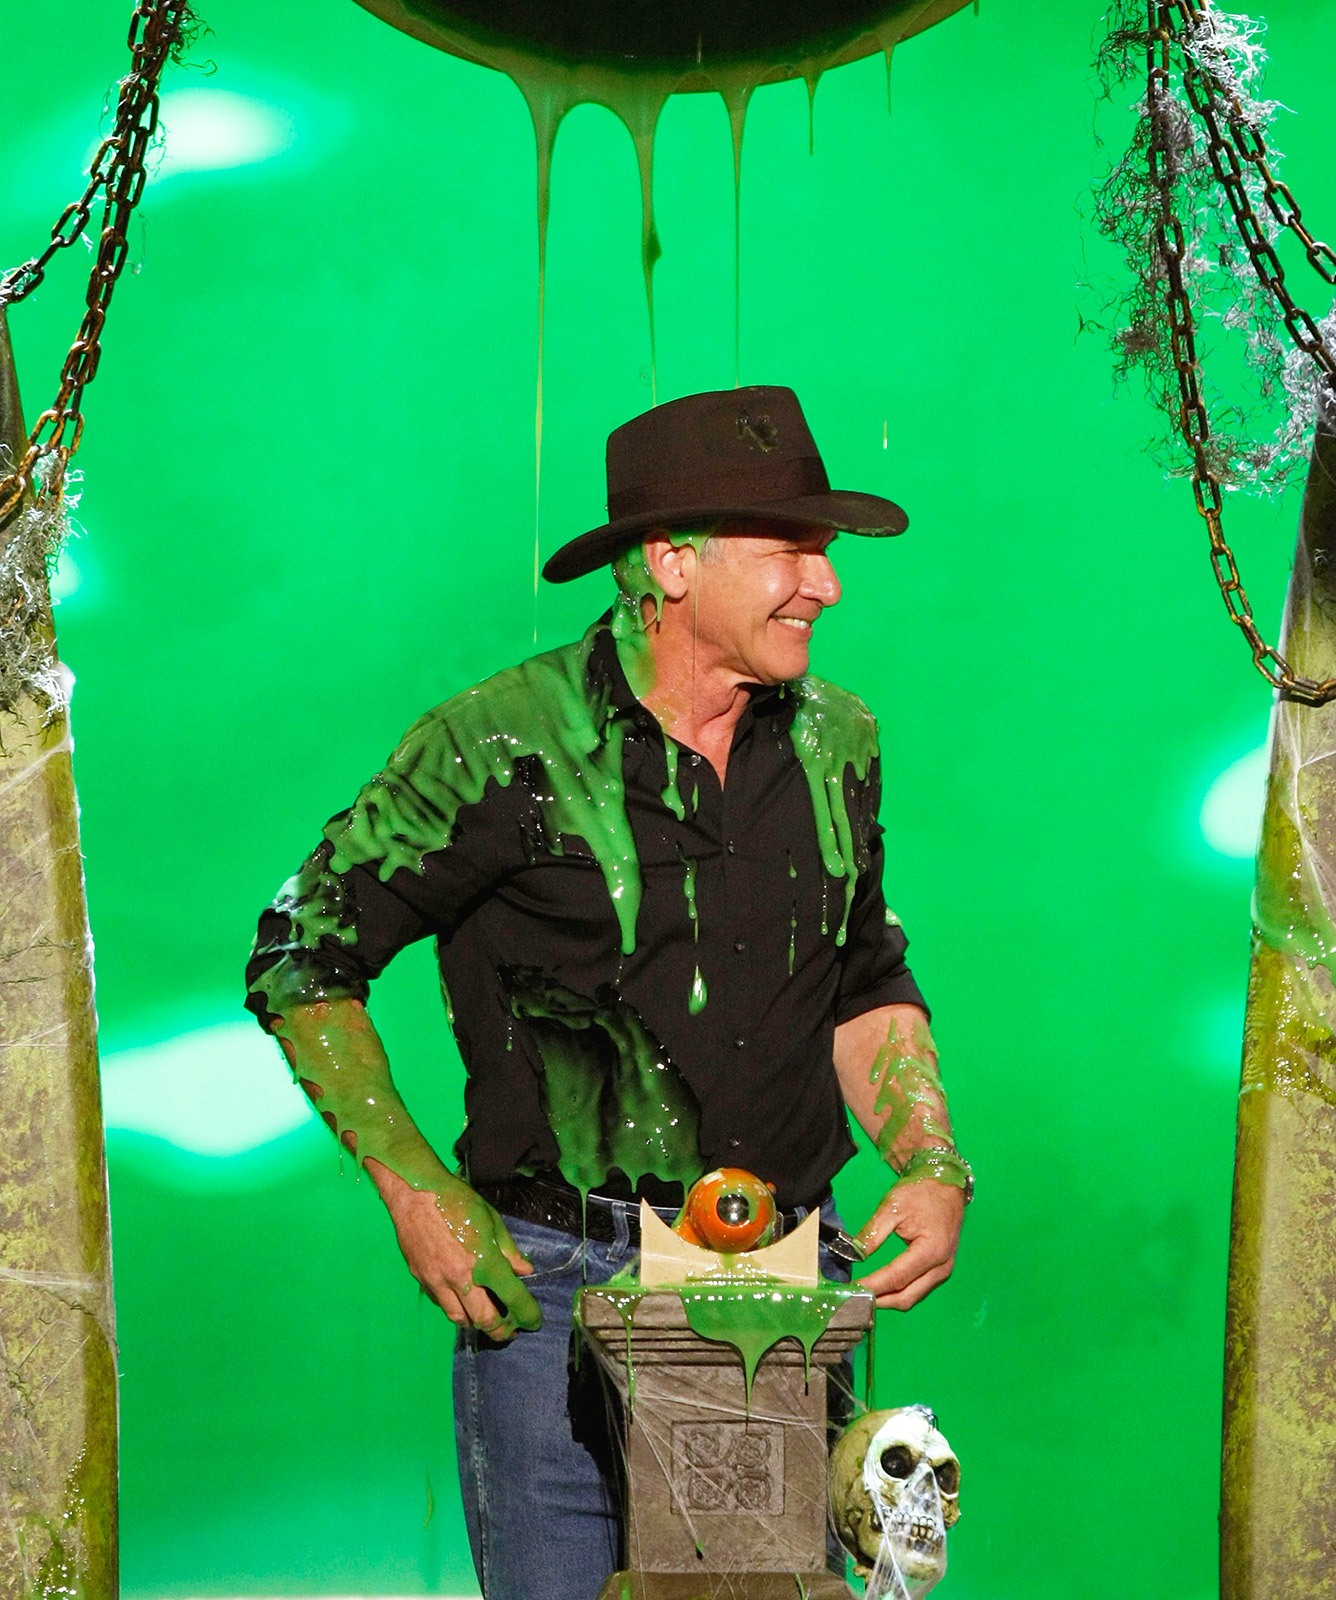 "Shia LaBeouf (not pictured) tricked his Indiana Jones and the Kingdom of the Crystal Skull costar into donning his character's costume and retrieving the winner's name from an orb inside the Pauley Pavilion in Westwood, Calif., on March 29, 2008. ""I'll handle this,"" Ford said just before a goblet of green goo flipped upside down and drenched the actor."